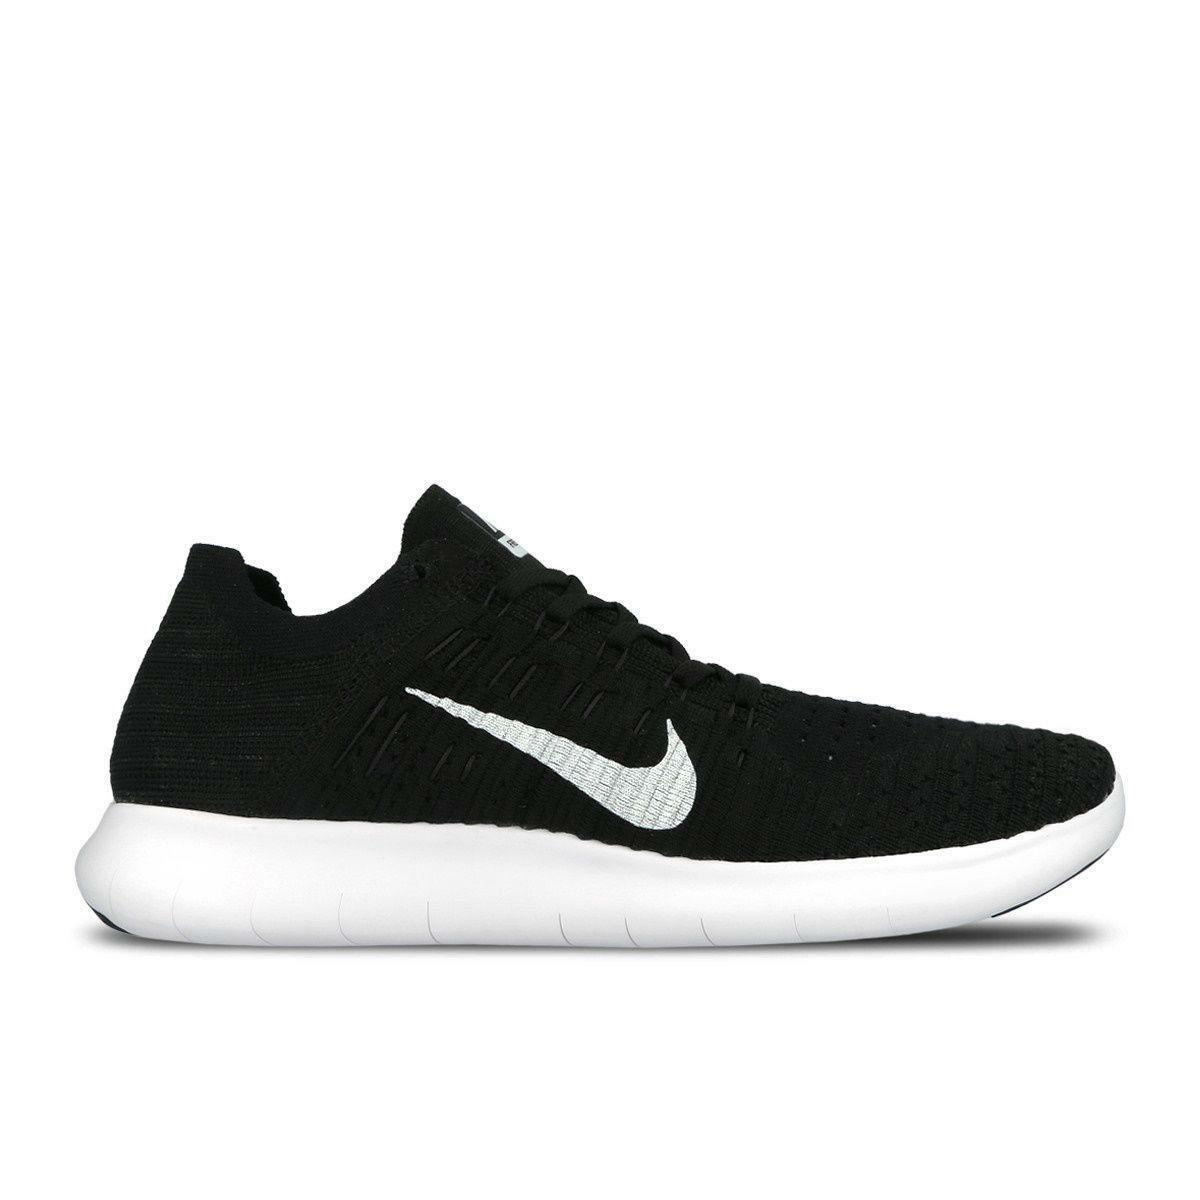 New shoes for men and women, limited time discount Mens NIKE FREE RN FLYKNIT Black Running Trainers 831069 001